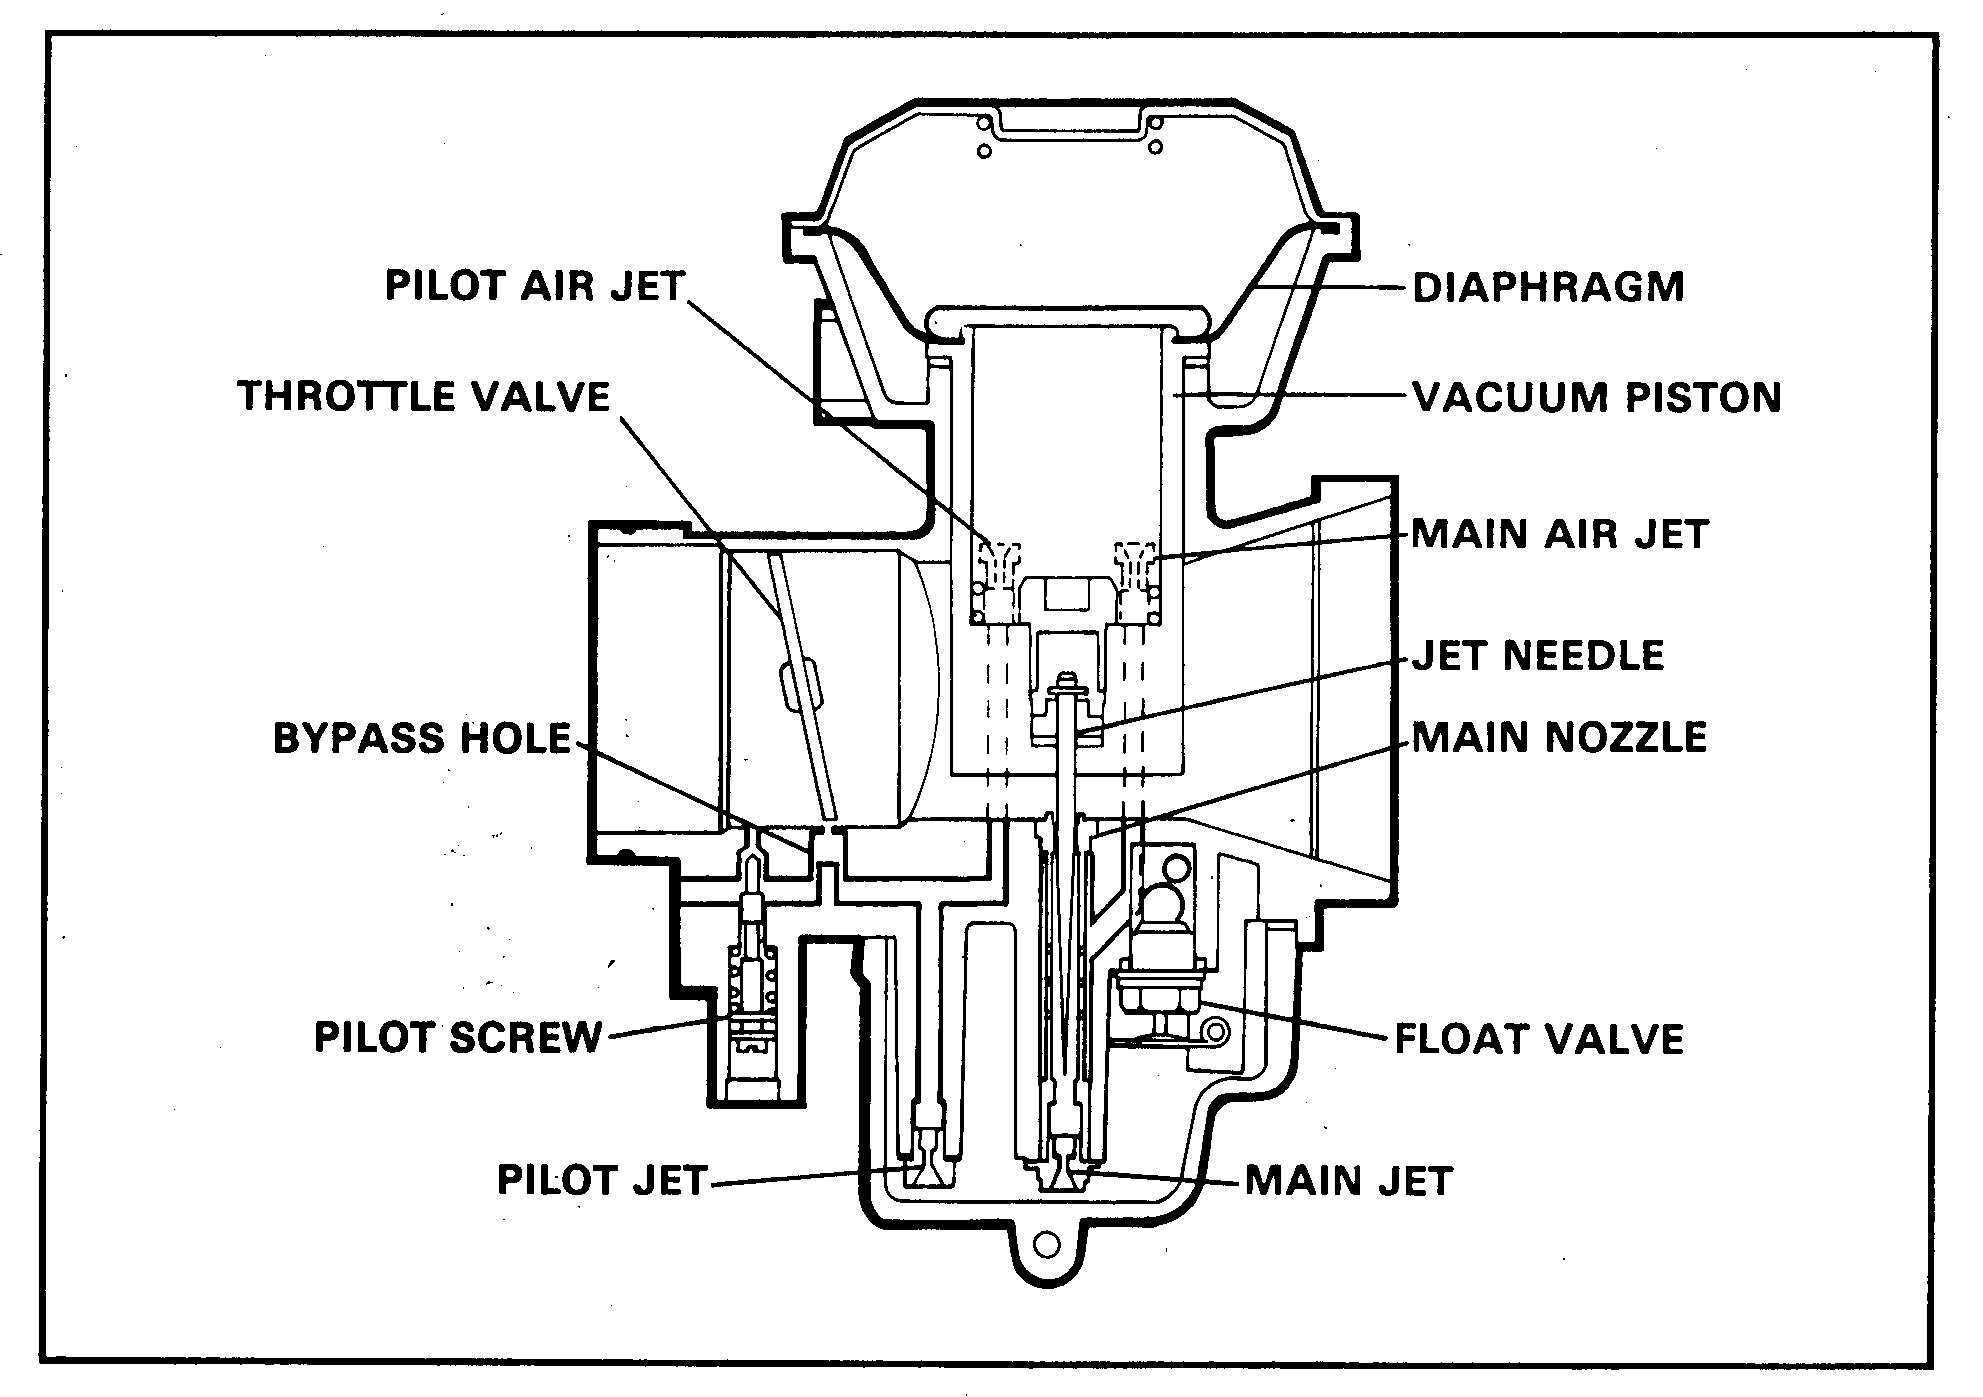 Virago Hitachi Carburetors on kawasaki motorcycle wiring diagrams